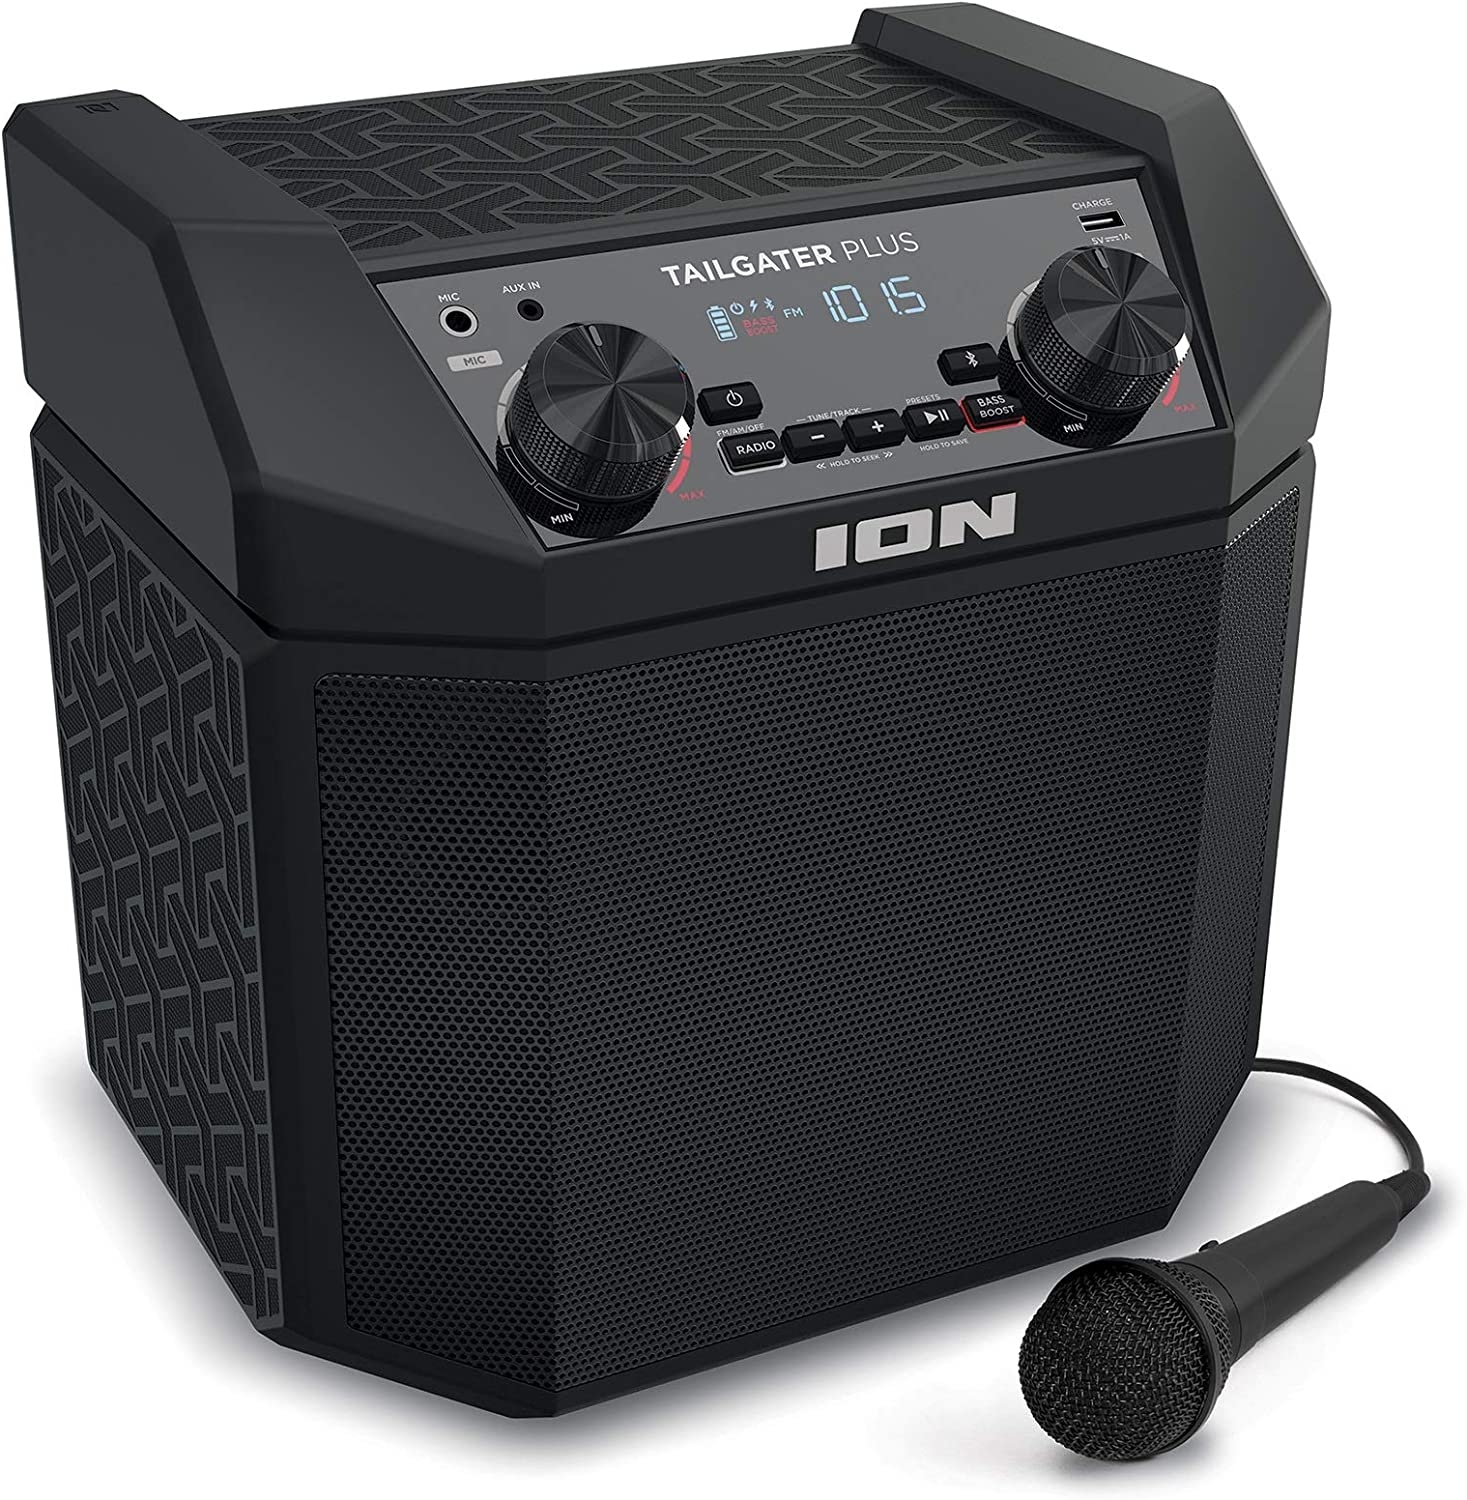 ION Audio Tailgater Plus - 8W Portable Outdoor Wireless Bluetooth Speaker  with 8 Hour Battery, Microphone, Radio and USB Charging